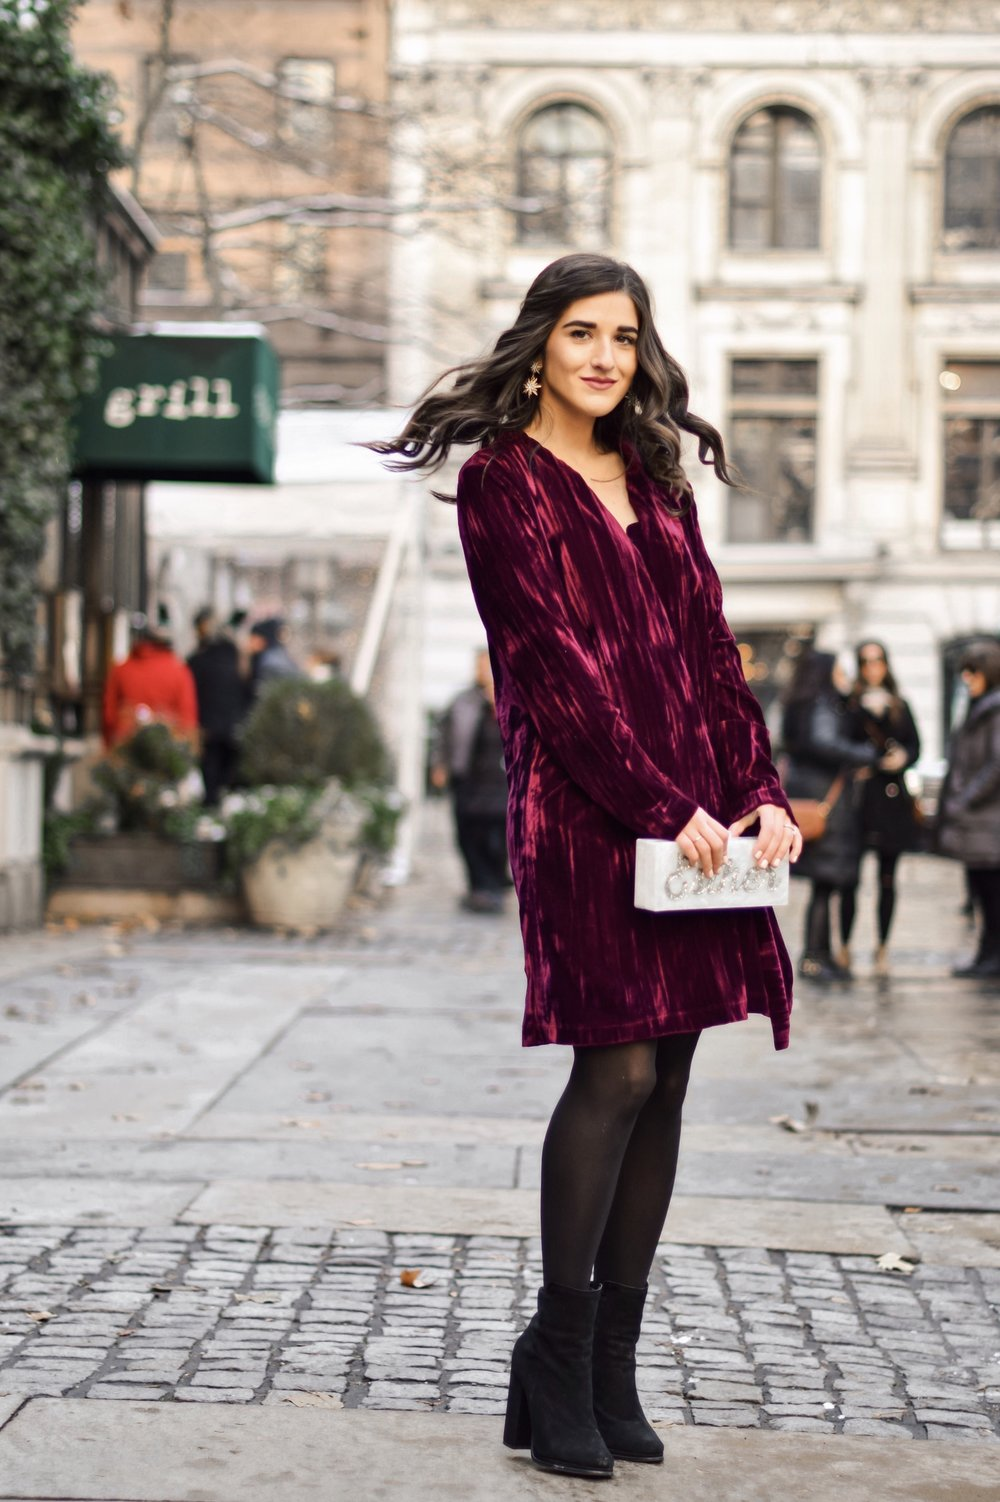 17 Tips On Building An Instagram Following Maroon Velvet Dress Black Booties Esther Santer Fashion Blog NYC Street Style Blogger Outfit OOTD Trendy Zara Online Shopping Winter Monogram Box Bag Clutch Shoes M4D3 Wavy Hair Hue Tights Wear Simple Classic.jpg